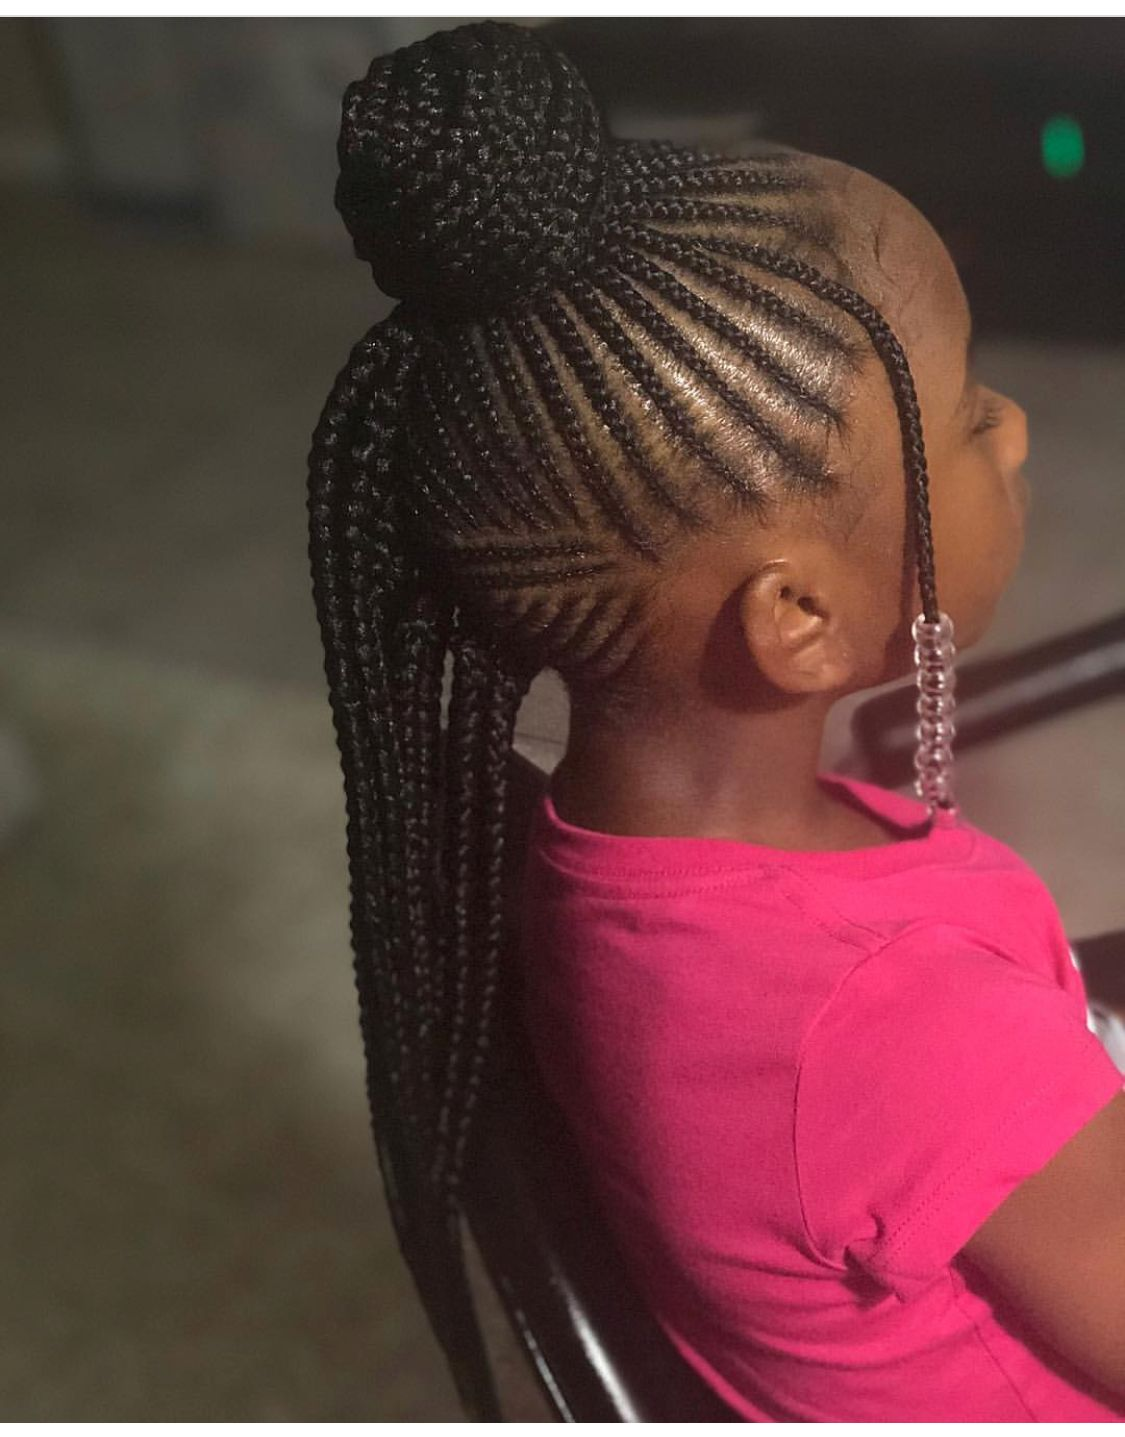 Pin by murk morena on cornrows pinterest girl hairstyles kid